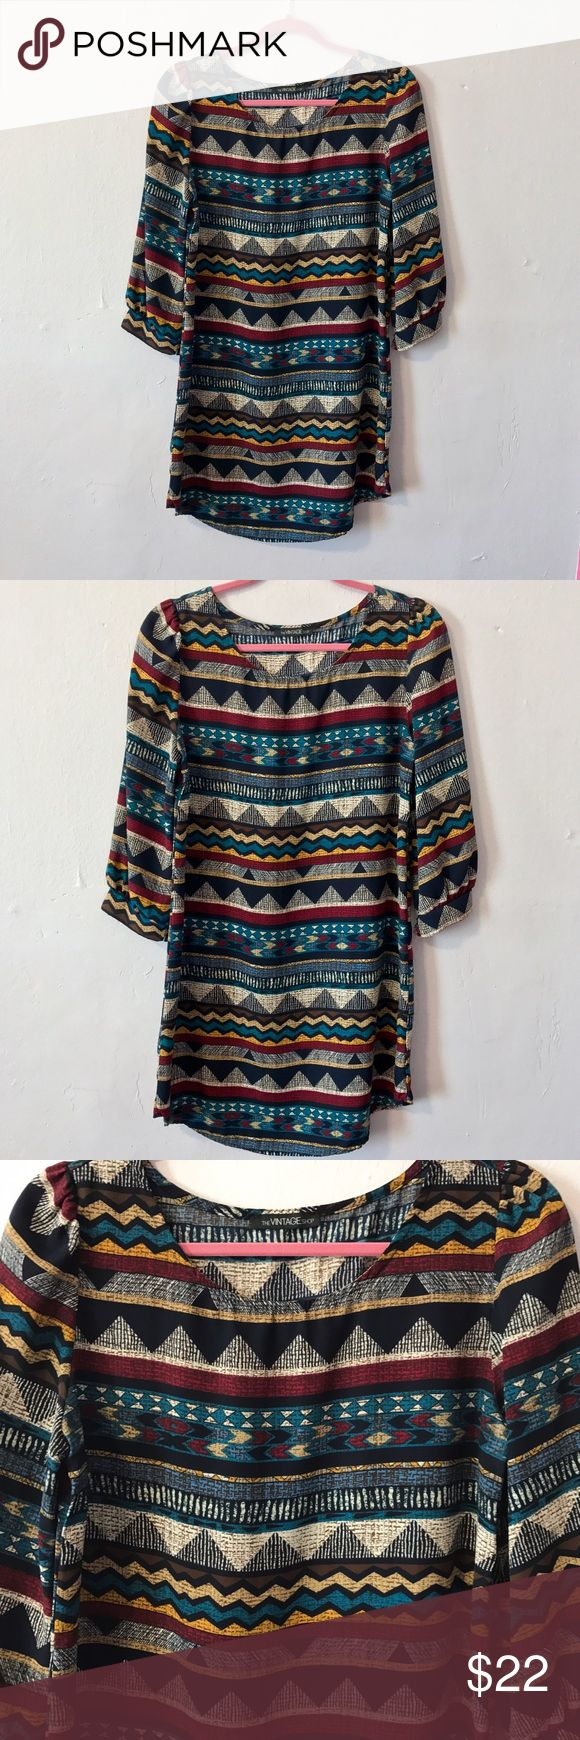 Boho Tribal Print Shift Dress mini chic Aztec Midi Perfect little light weight tribal print shift dress. In excellent preloved condition, no signs of wear. Easy to wear and the perfect option for a casual date night, weekend brunch or any occasion that calls for a simple yet exciting look. Fun & bright tribal print that makes you stand out. Also super comfortable and suitable for the workplace. Best fits a size medium or oversized small. Purchased from a boutique in Florida, brand is The…